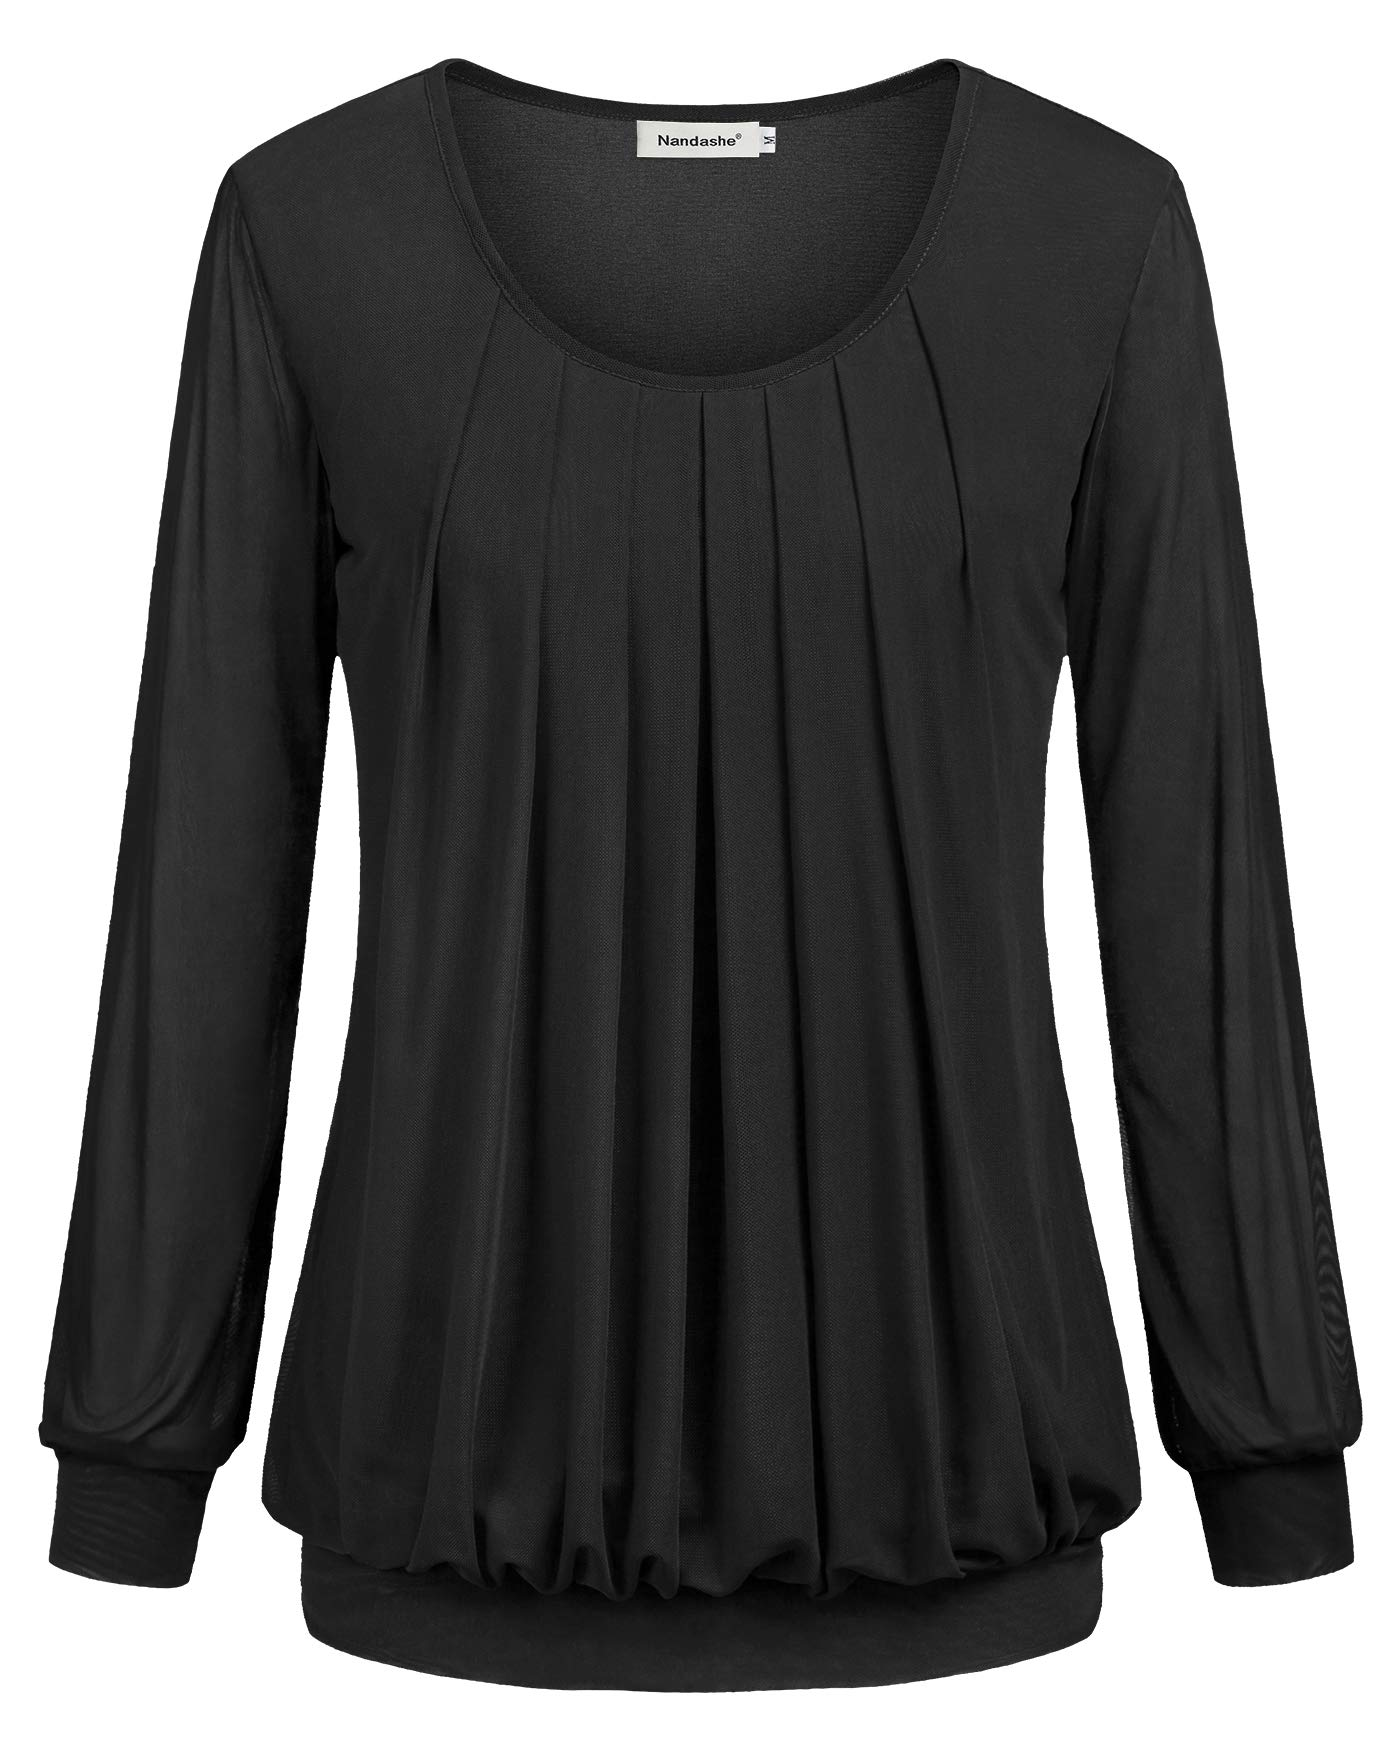 Nandashe Office Wear Women Feminist Rero Style O-Neck Long Sleeves High Stretch Elastic Band Thin Comfy Mesh Draped Blouse Coat Cardigan Jacket in Winter Fall Outfit Clothing Black Size 12-14